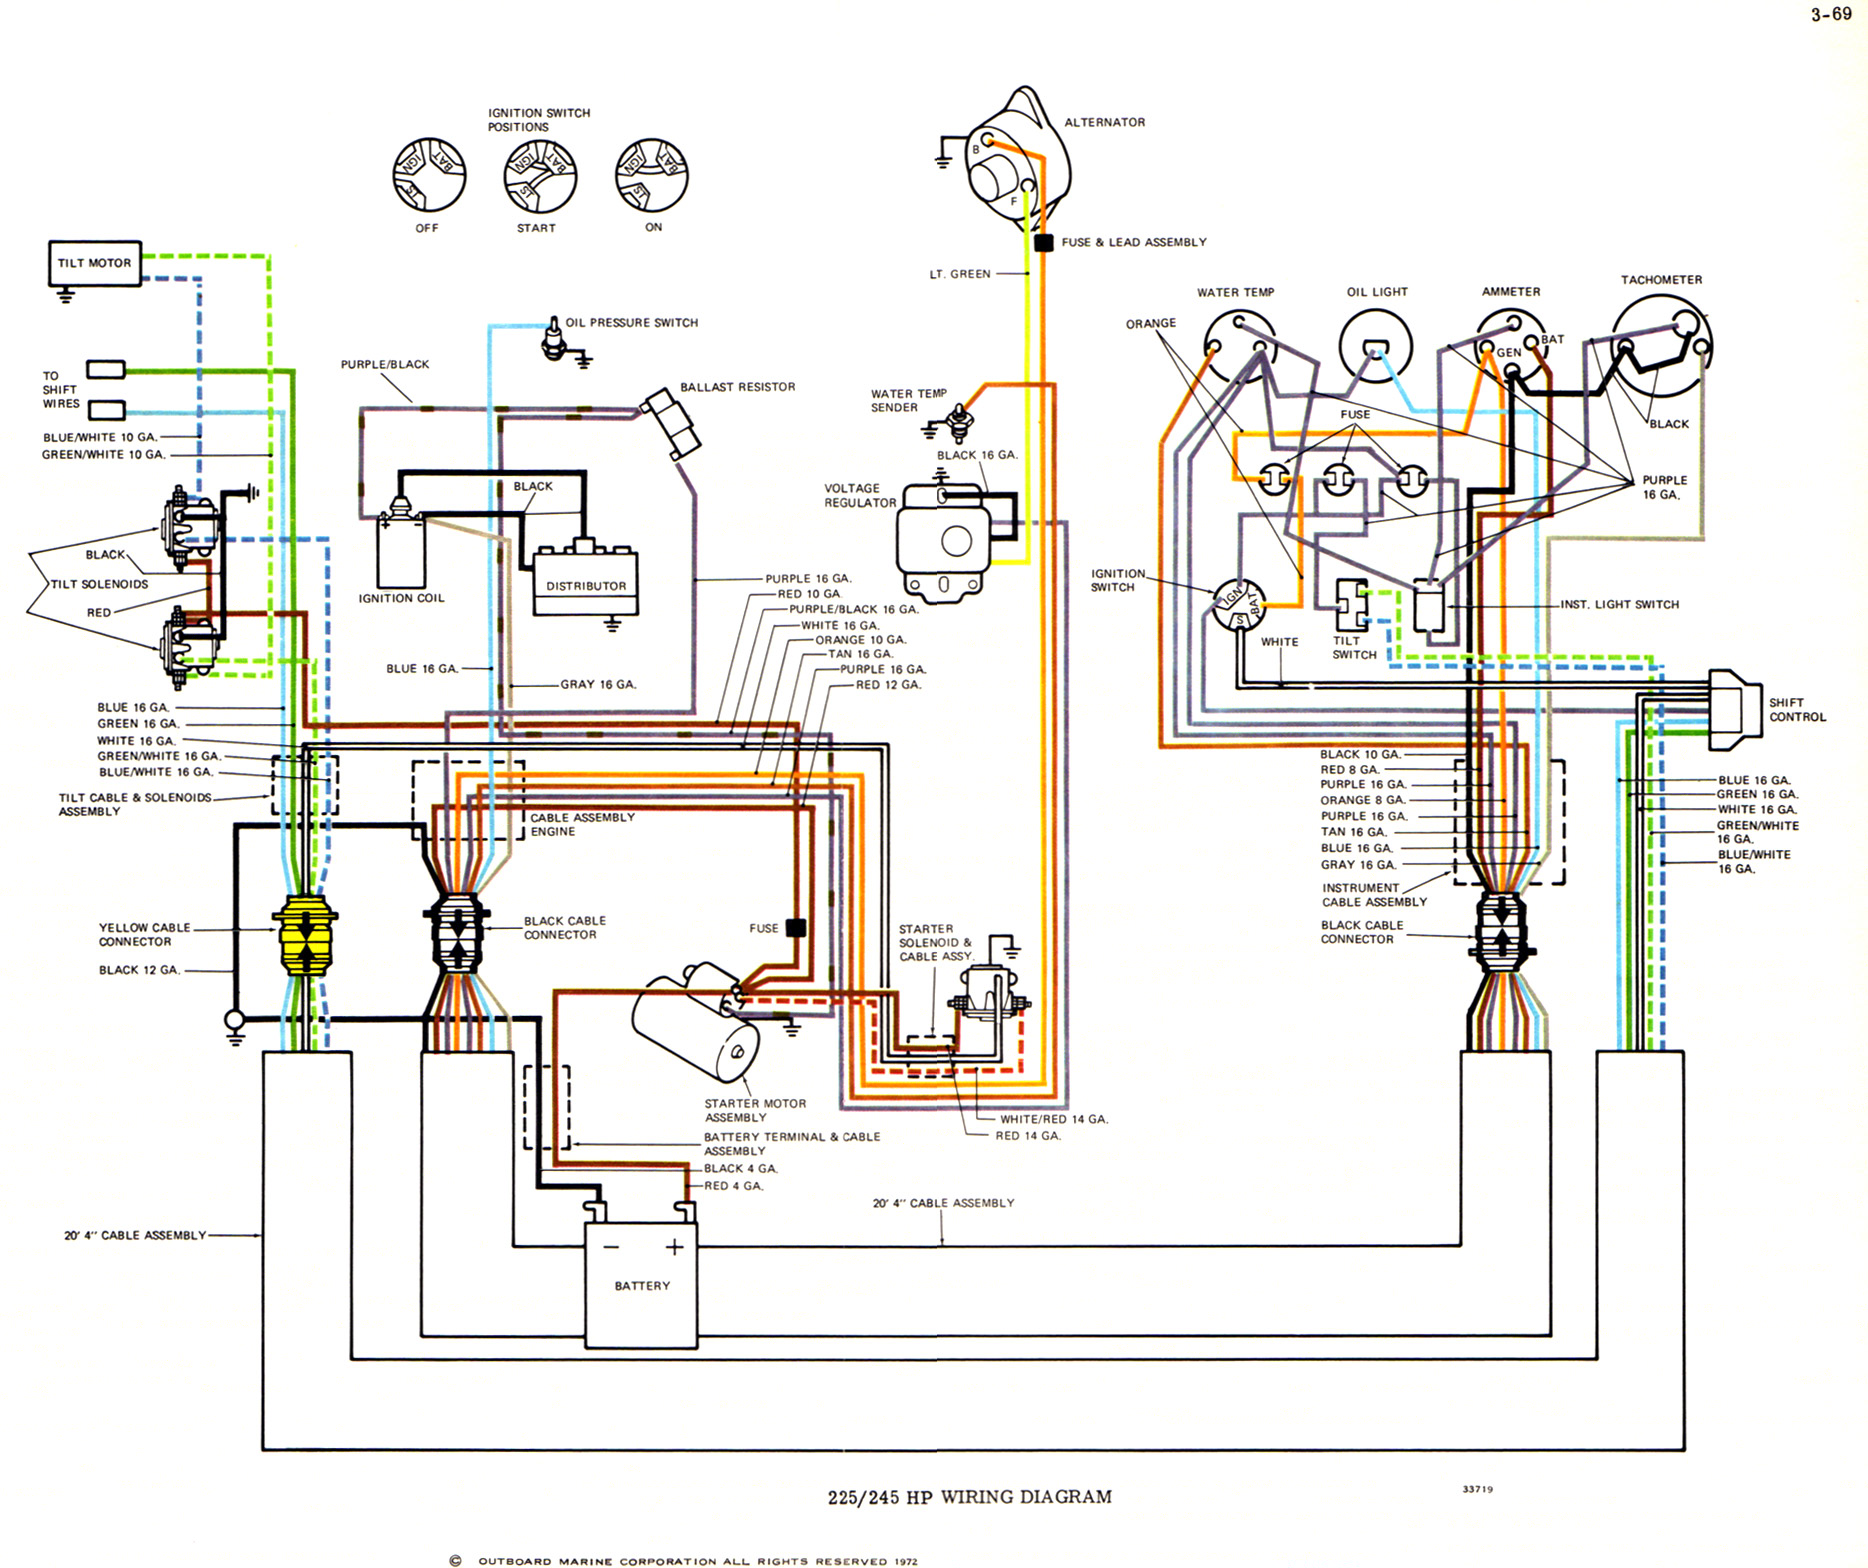 73_OMC_V8_all_big omc boat technical info omc wiring harness diagram at bakdesigns.co